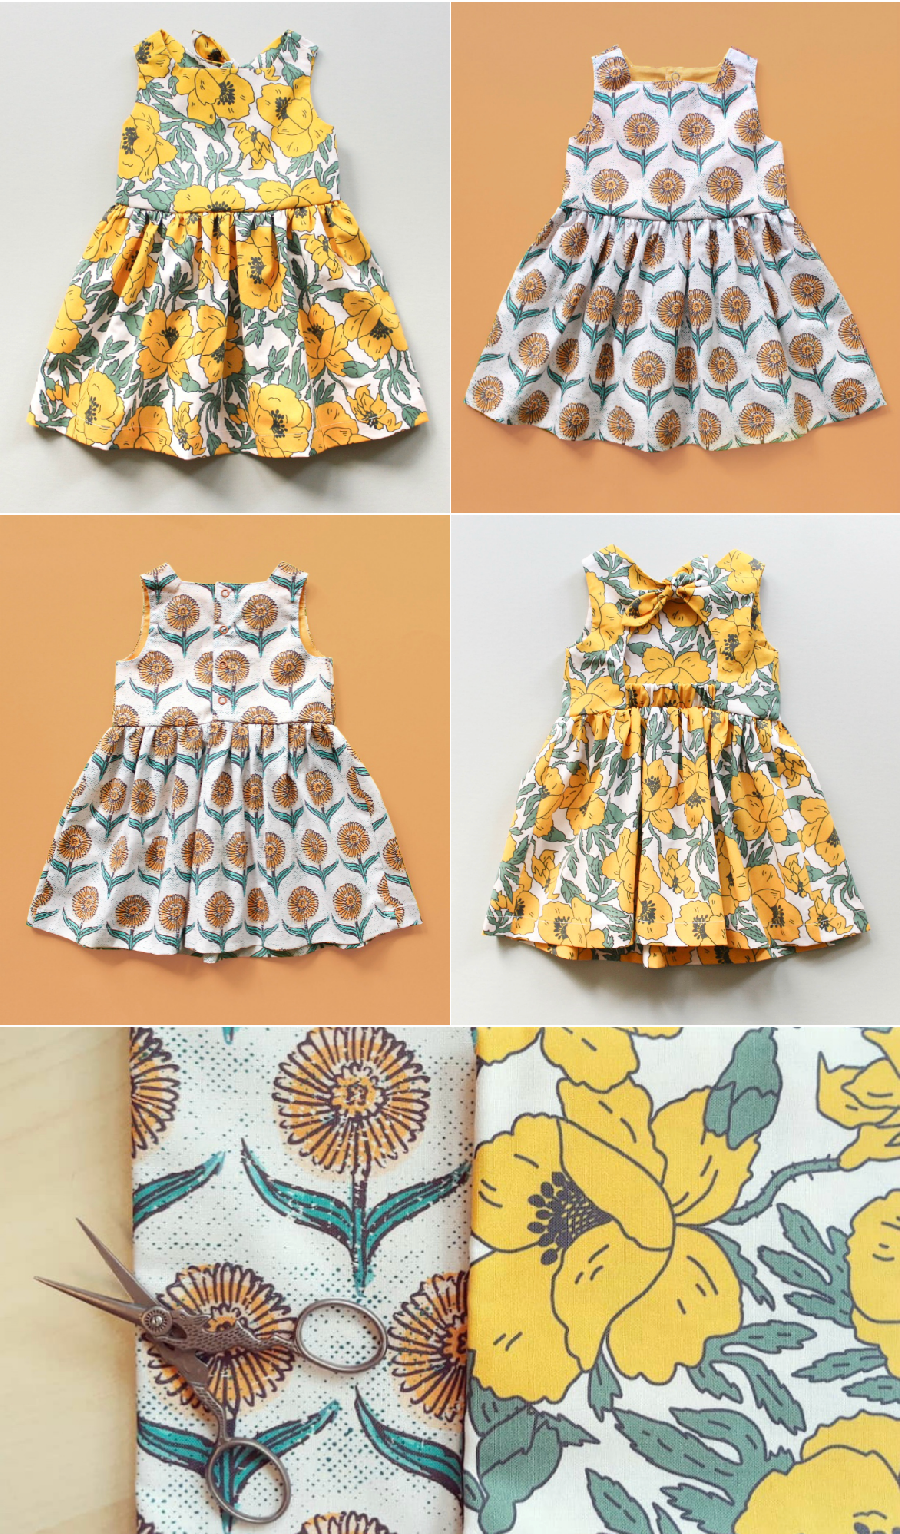 Easy baby dress patterns, easy baby romper patterns, easy baby and kids sewing patterns